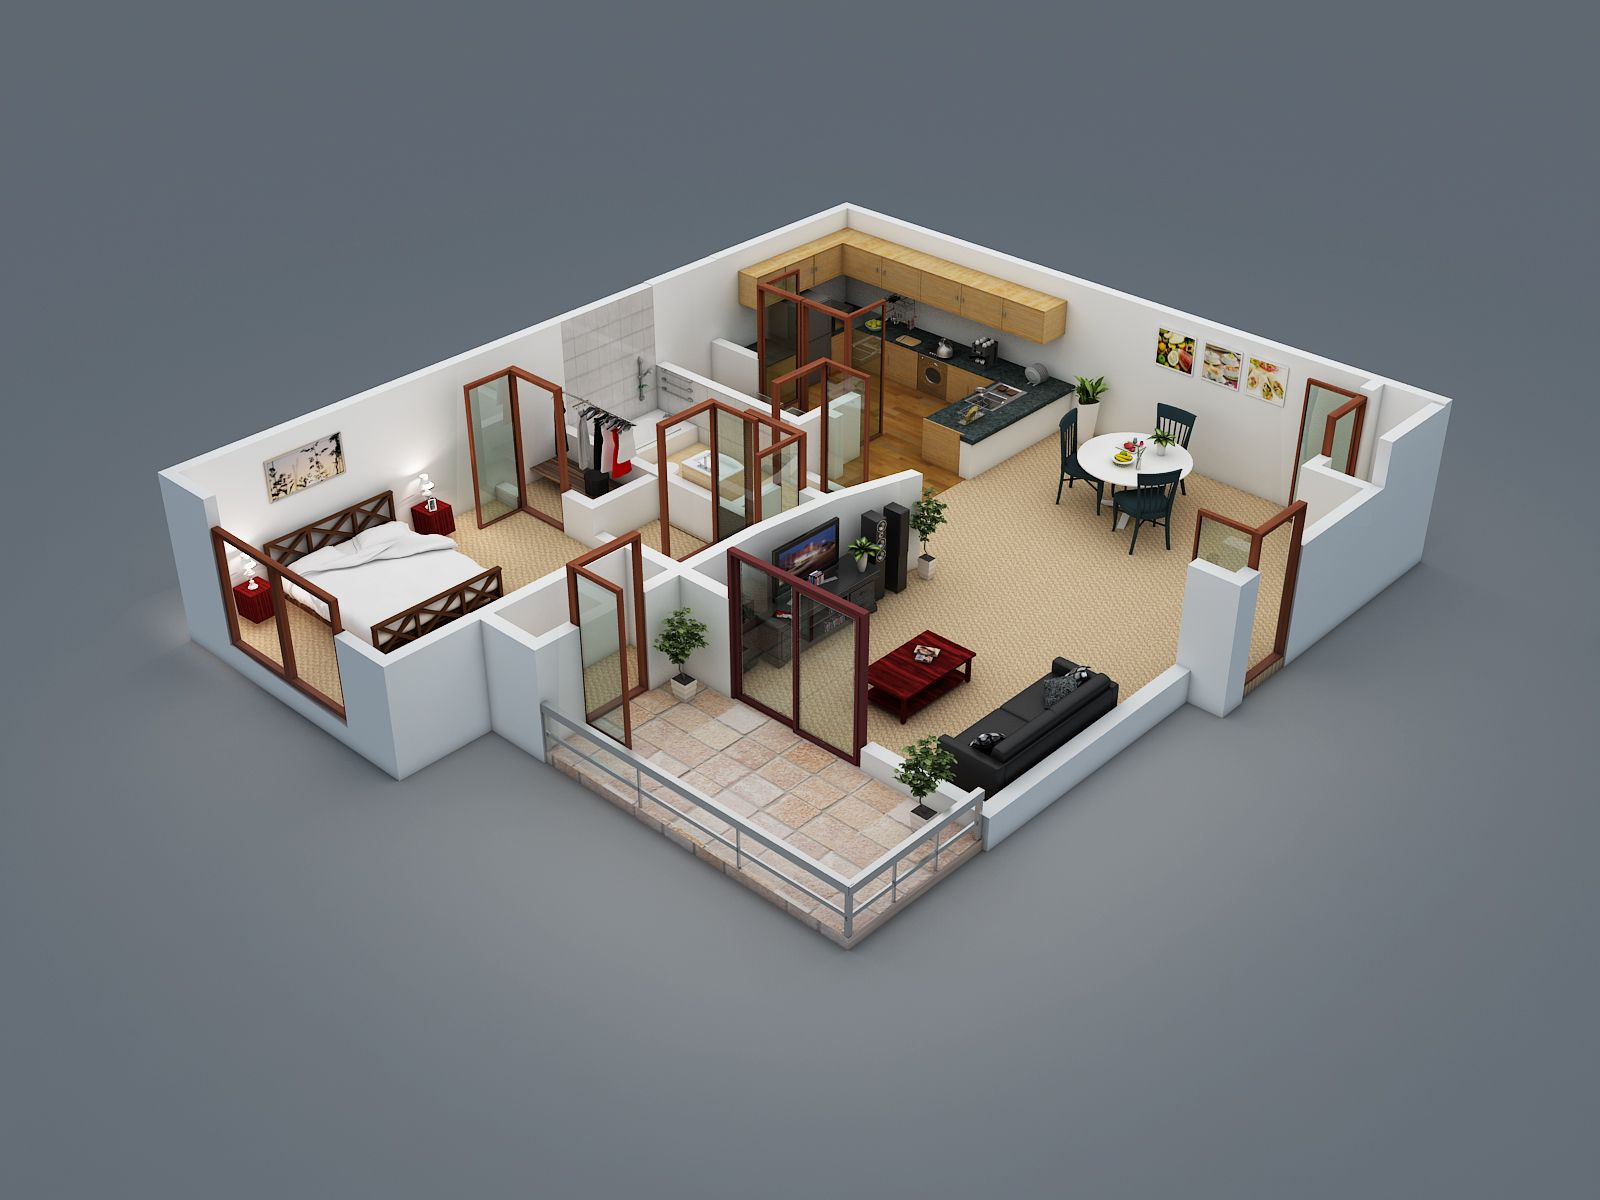 3d floor plan services architectural 3d floor plan rendering - 3d Plan House